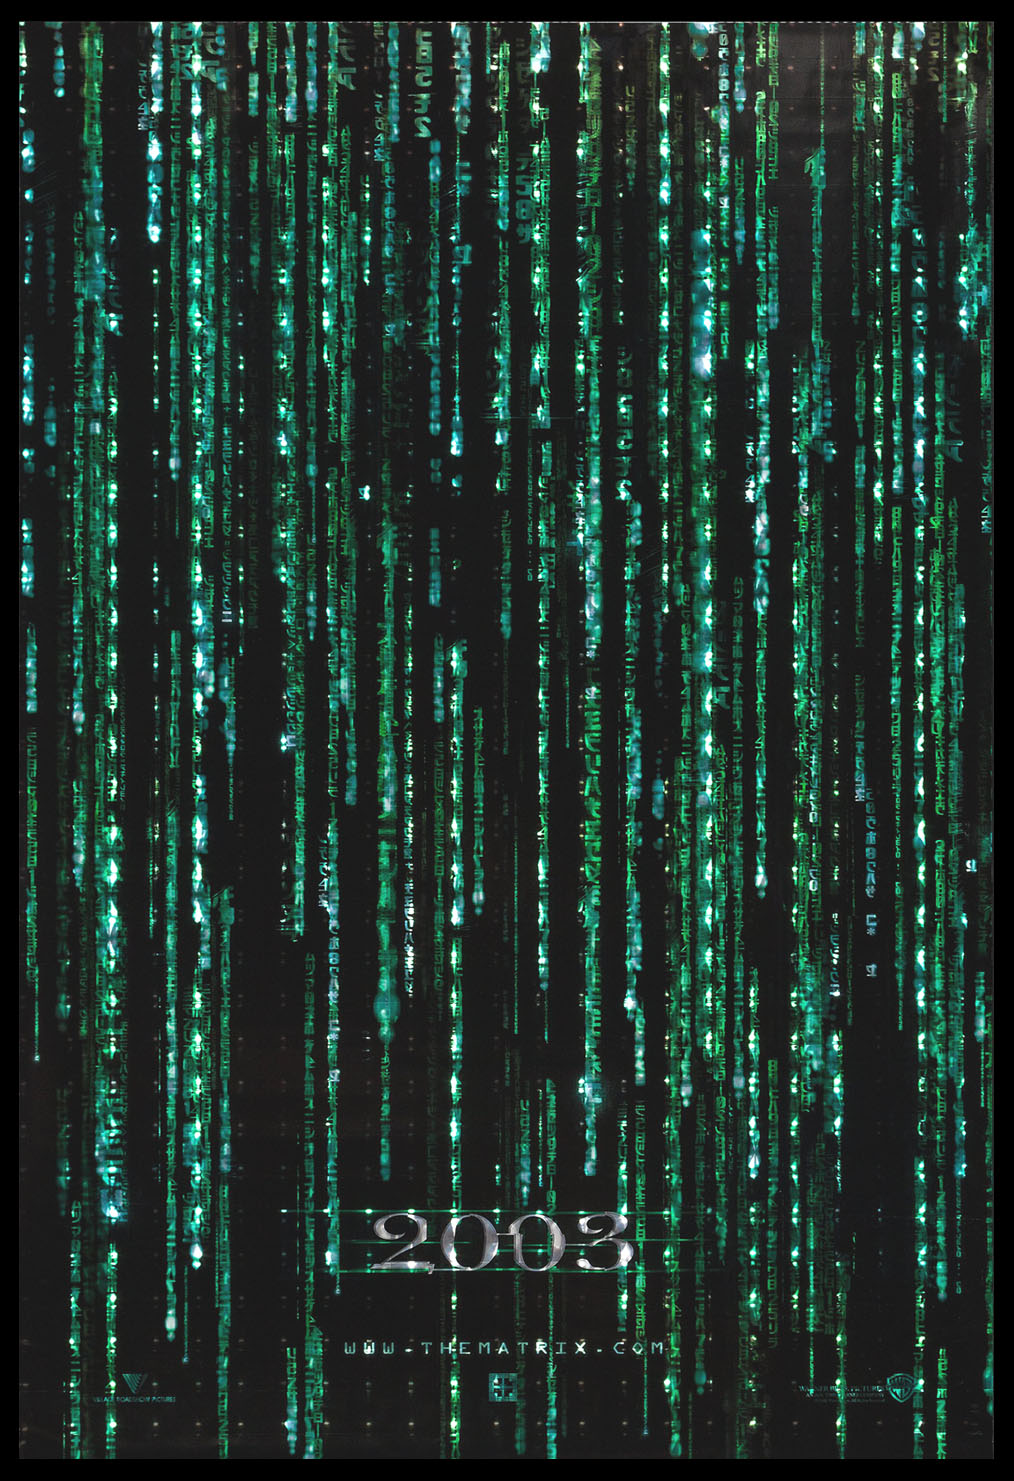 MATRIX RELOADED, THE @ FilmPosters.com